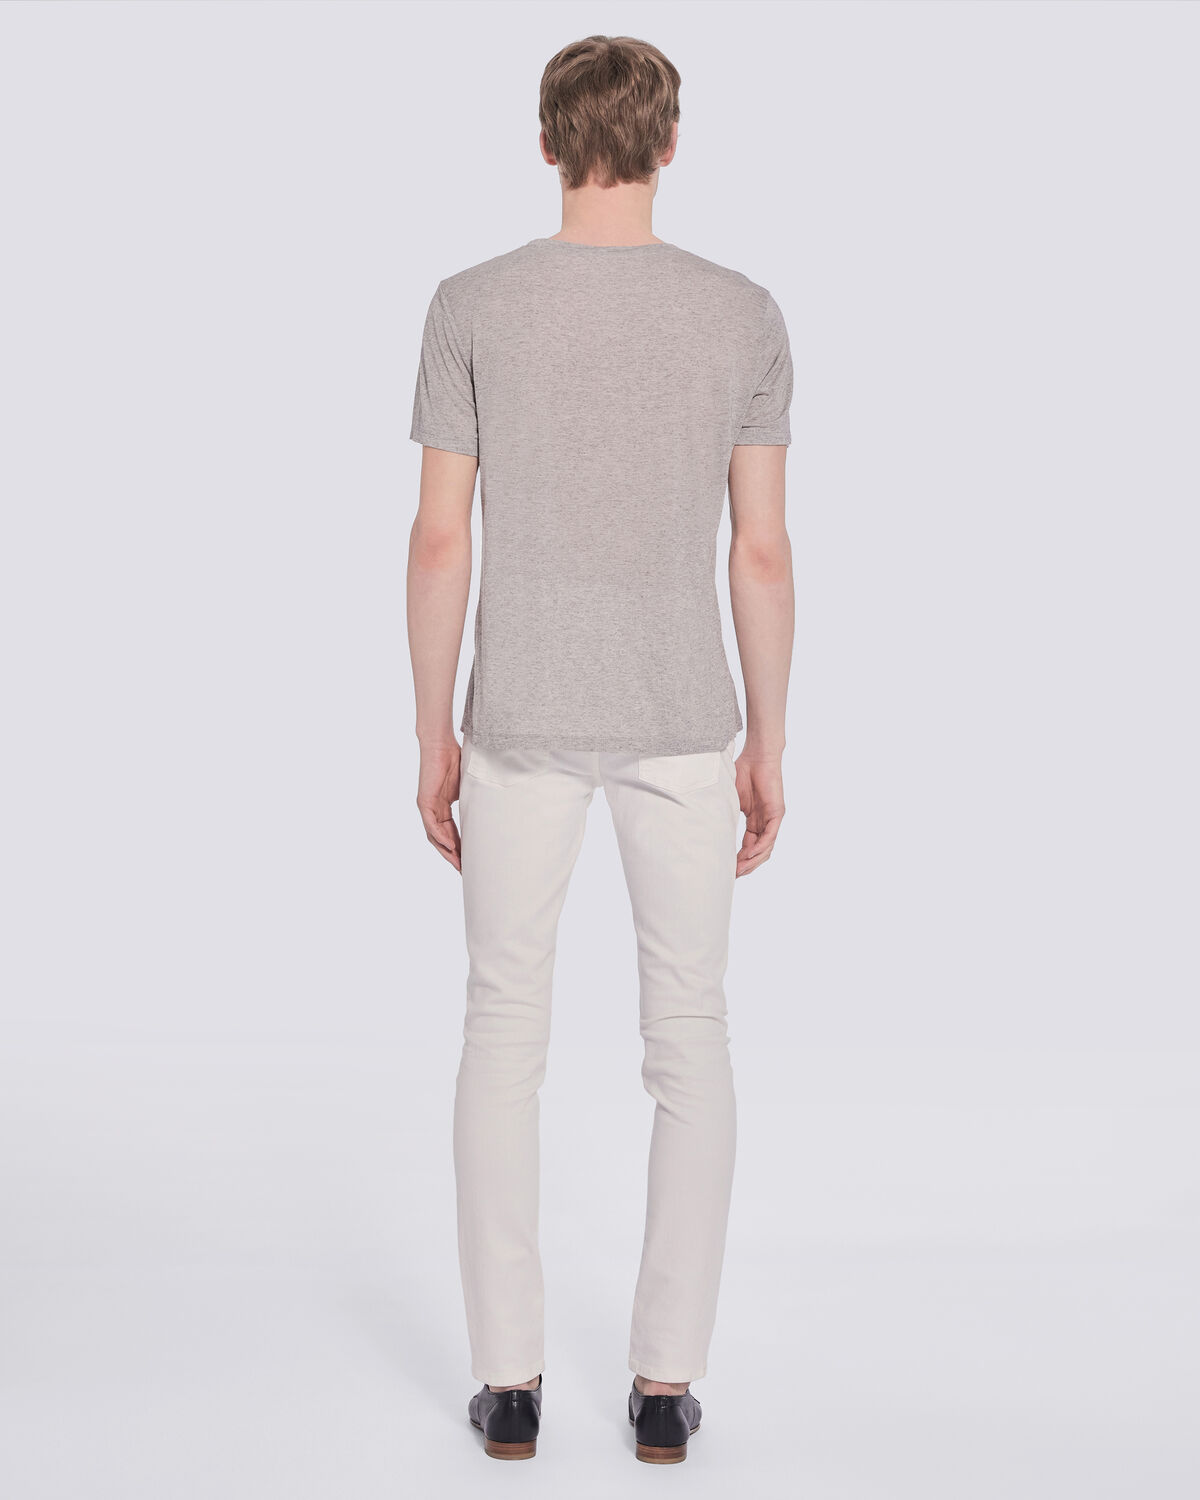 IRO - T-SHIRT GRIS CHINÉ MANCHES COURTES TYMON MIXED GREY